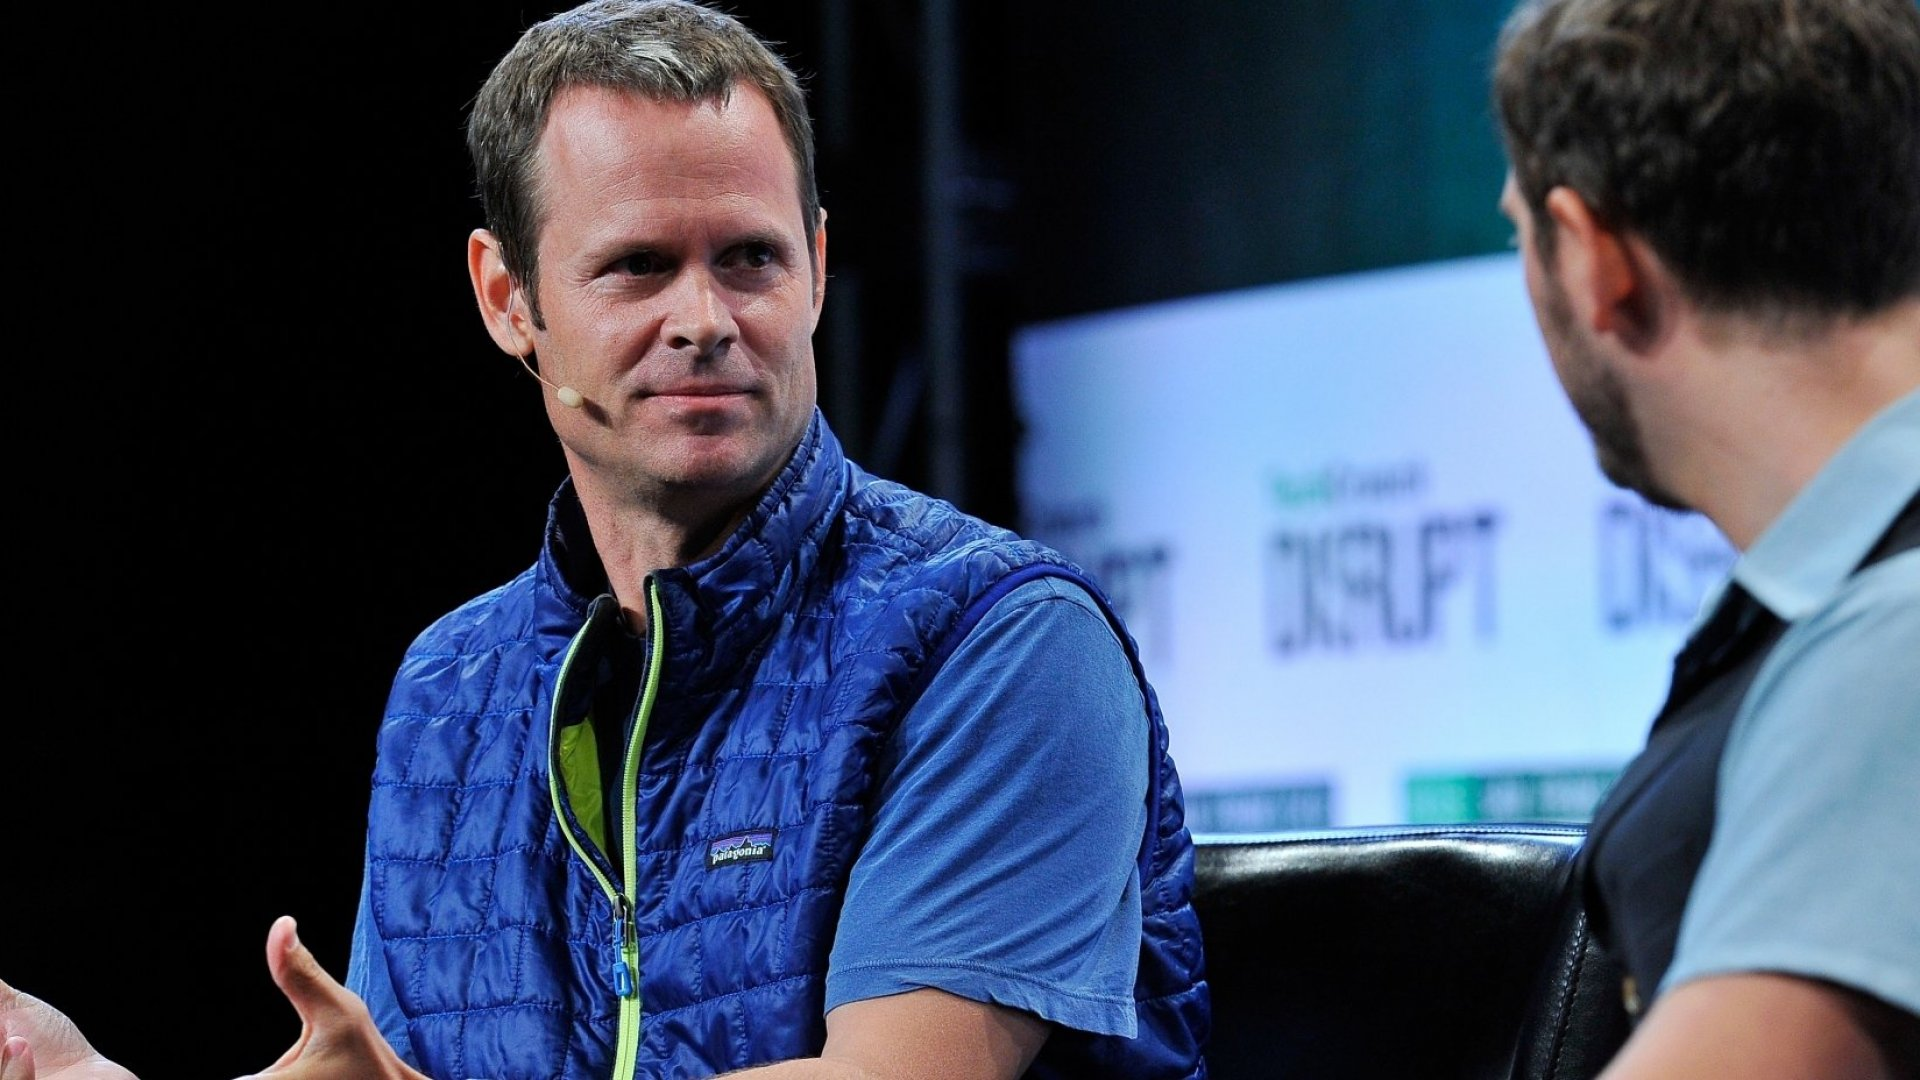 Pandora Founder Tim Westergren to Return as the Company's CEO